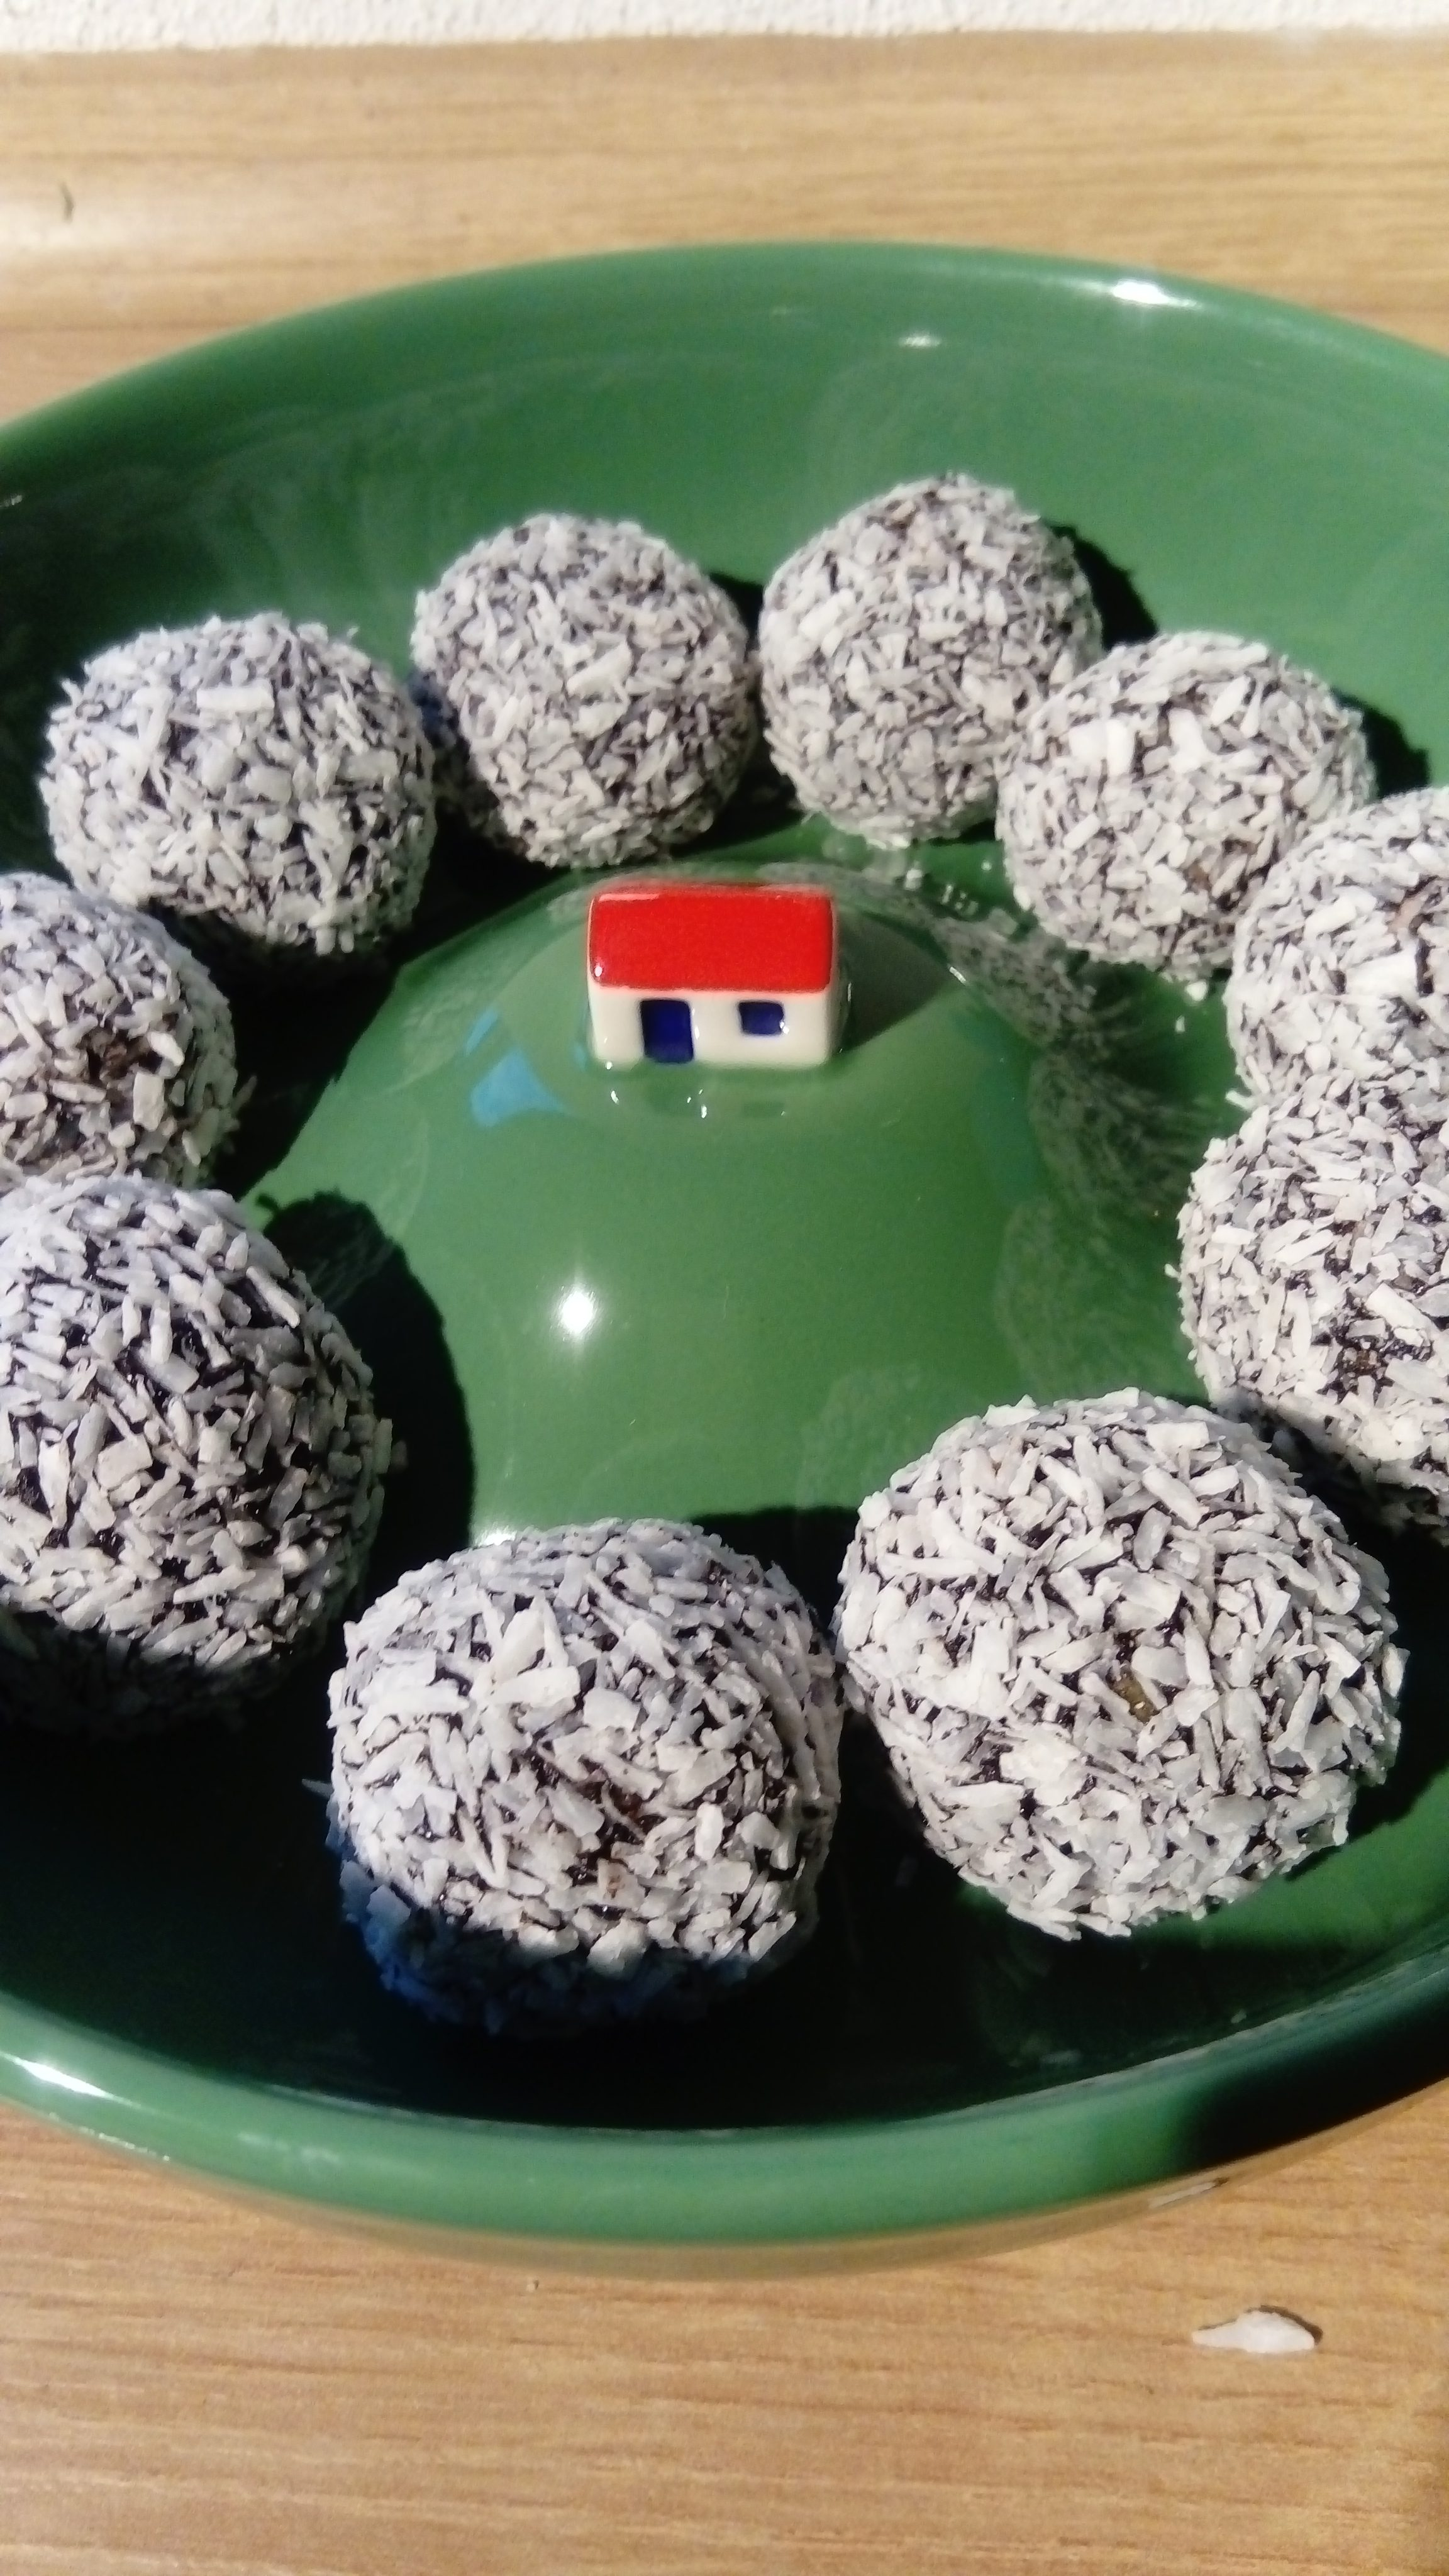 home-made bliss balls placed in a green porcelain dish with a small house in the middle